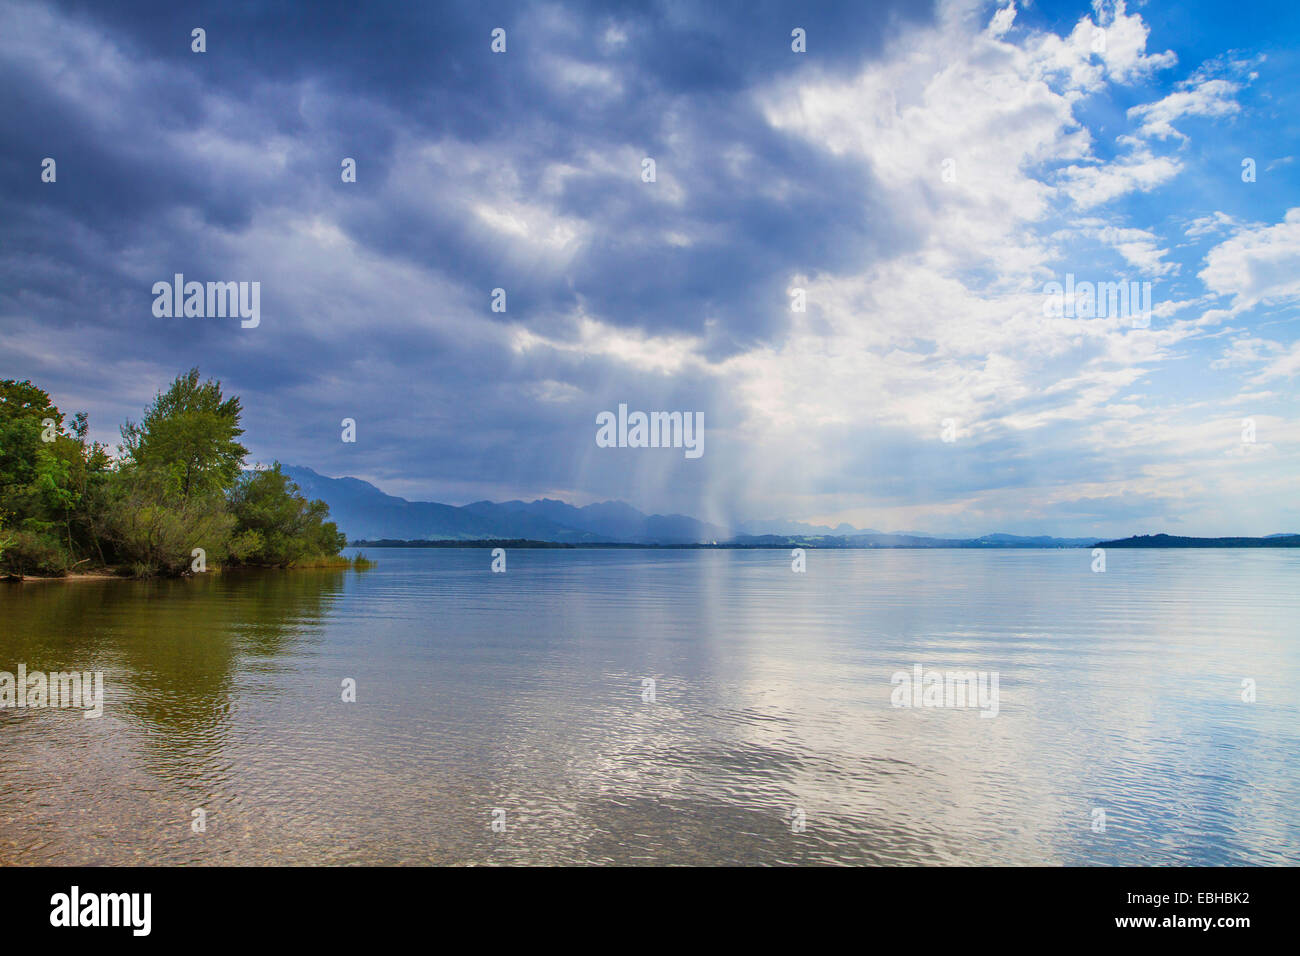 approaching thunderstorm over a lake, Germany, Bavaria, Lake Chiemsee - Stock Image